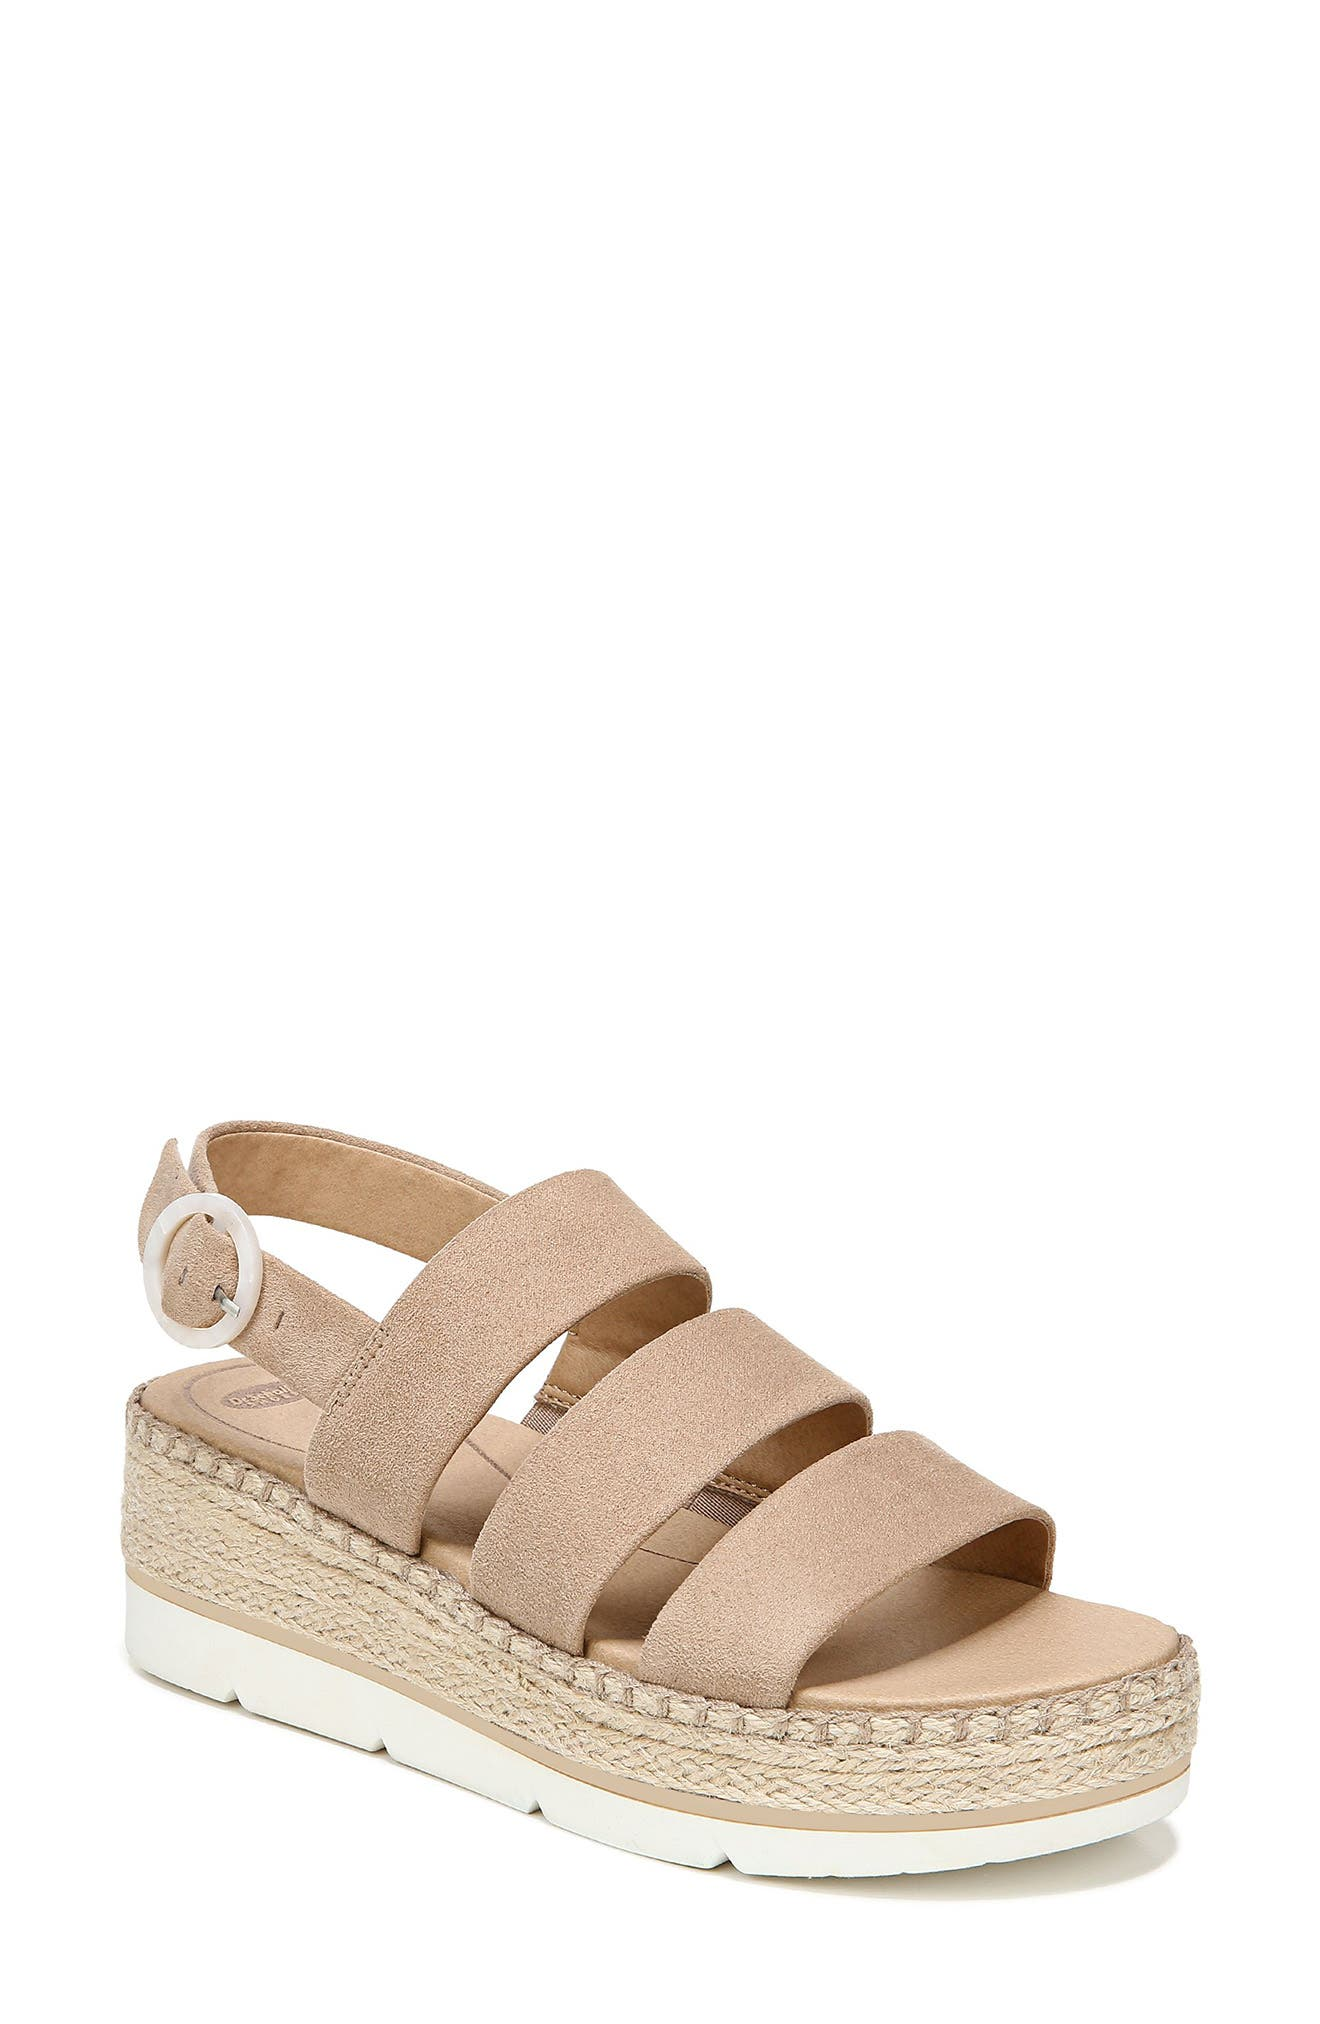 One & Only Wedge Sandal